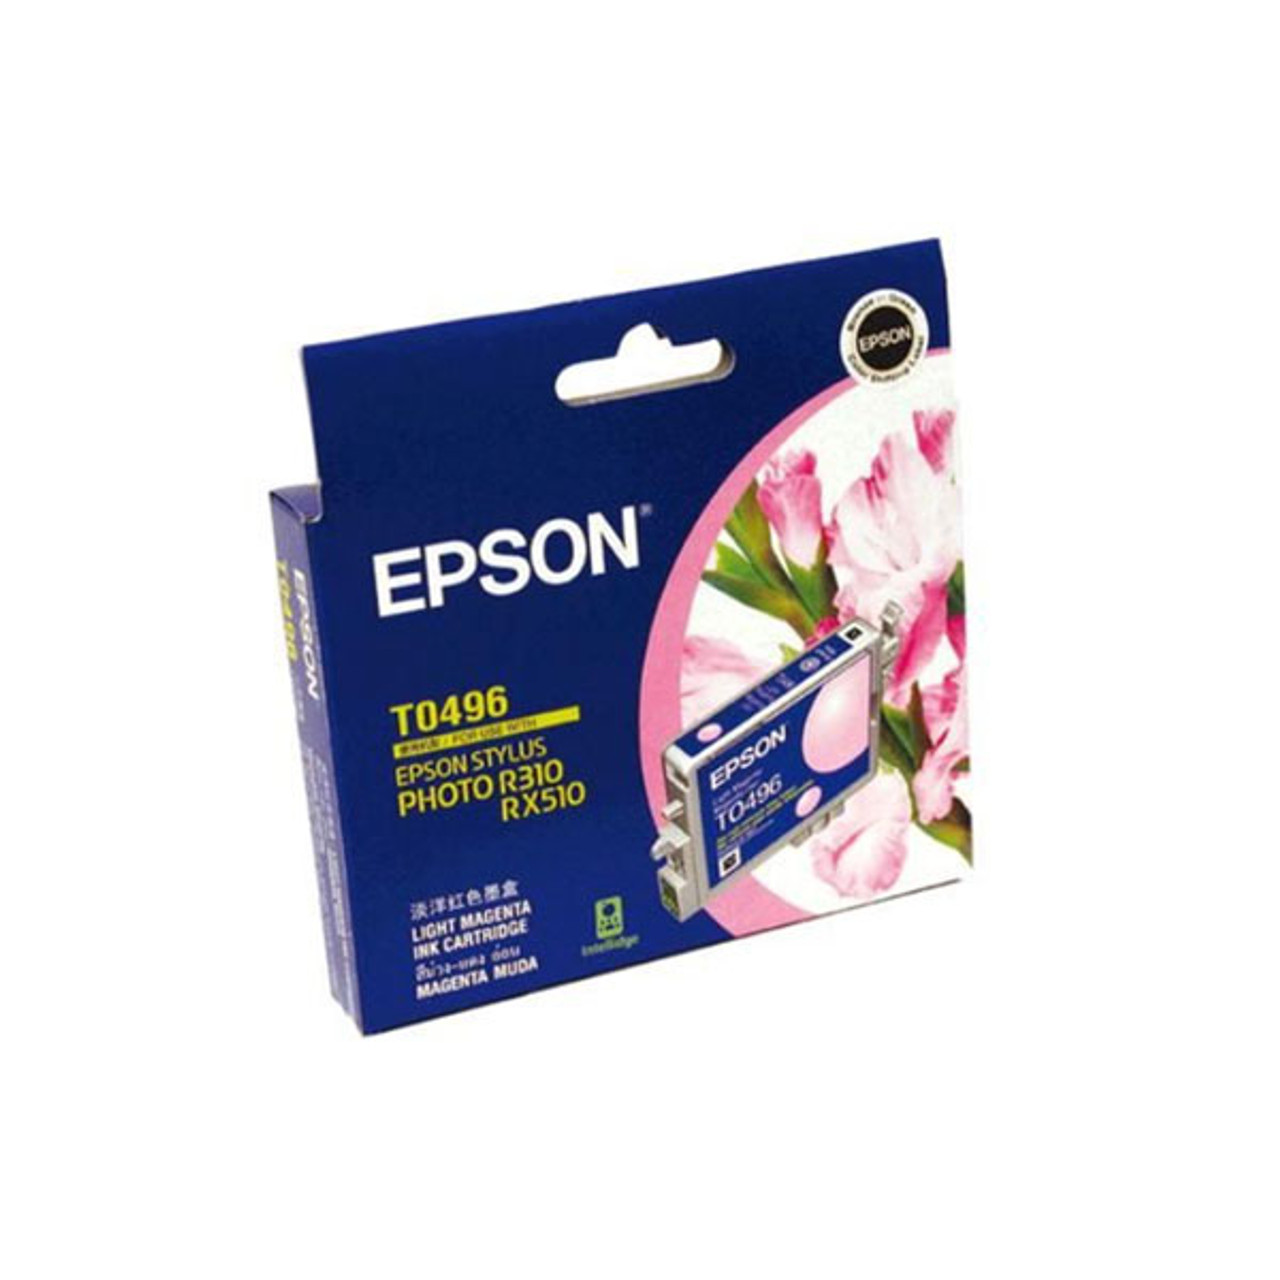 Image for Epson T0496 Light Mag Ink 430 pages Light Magenta CX Computer Superstore